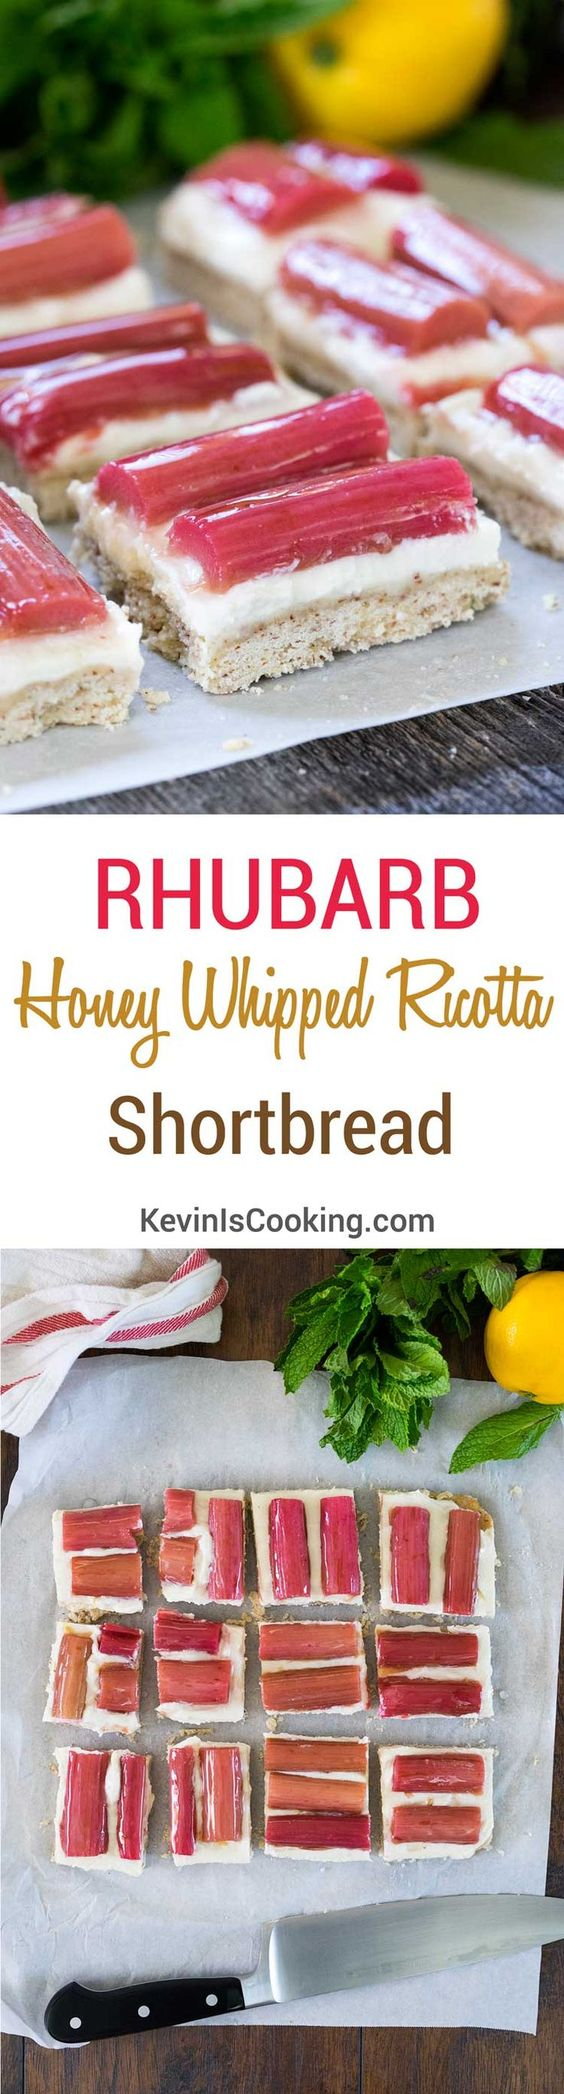 Rhubarb and Honey Whipped Ricotta Shortbread. http://www.keviniscooking.com